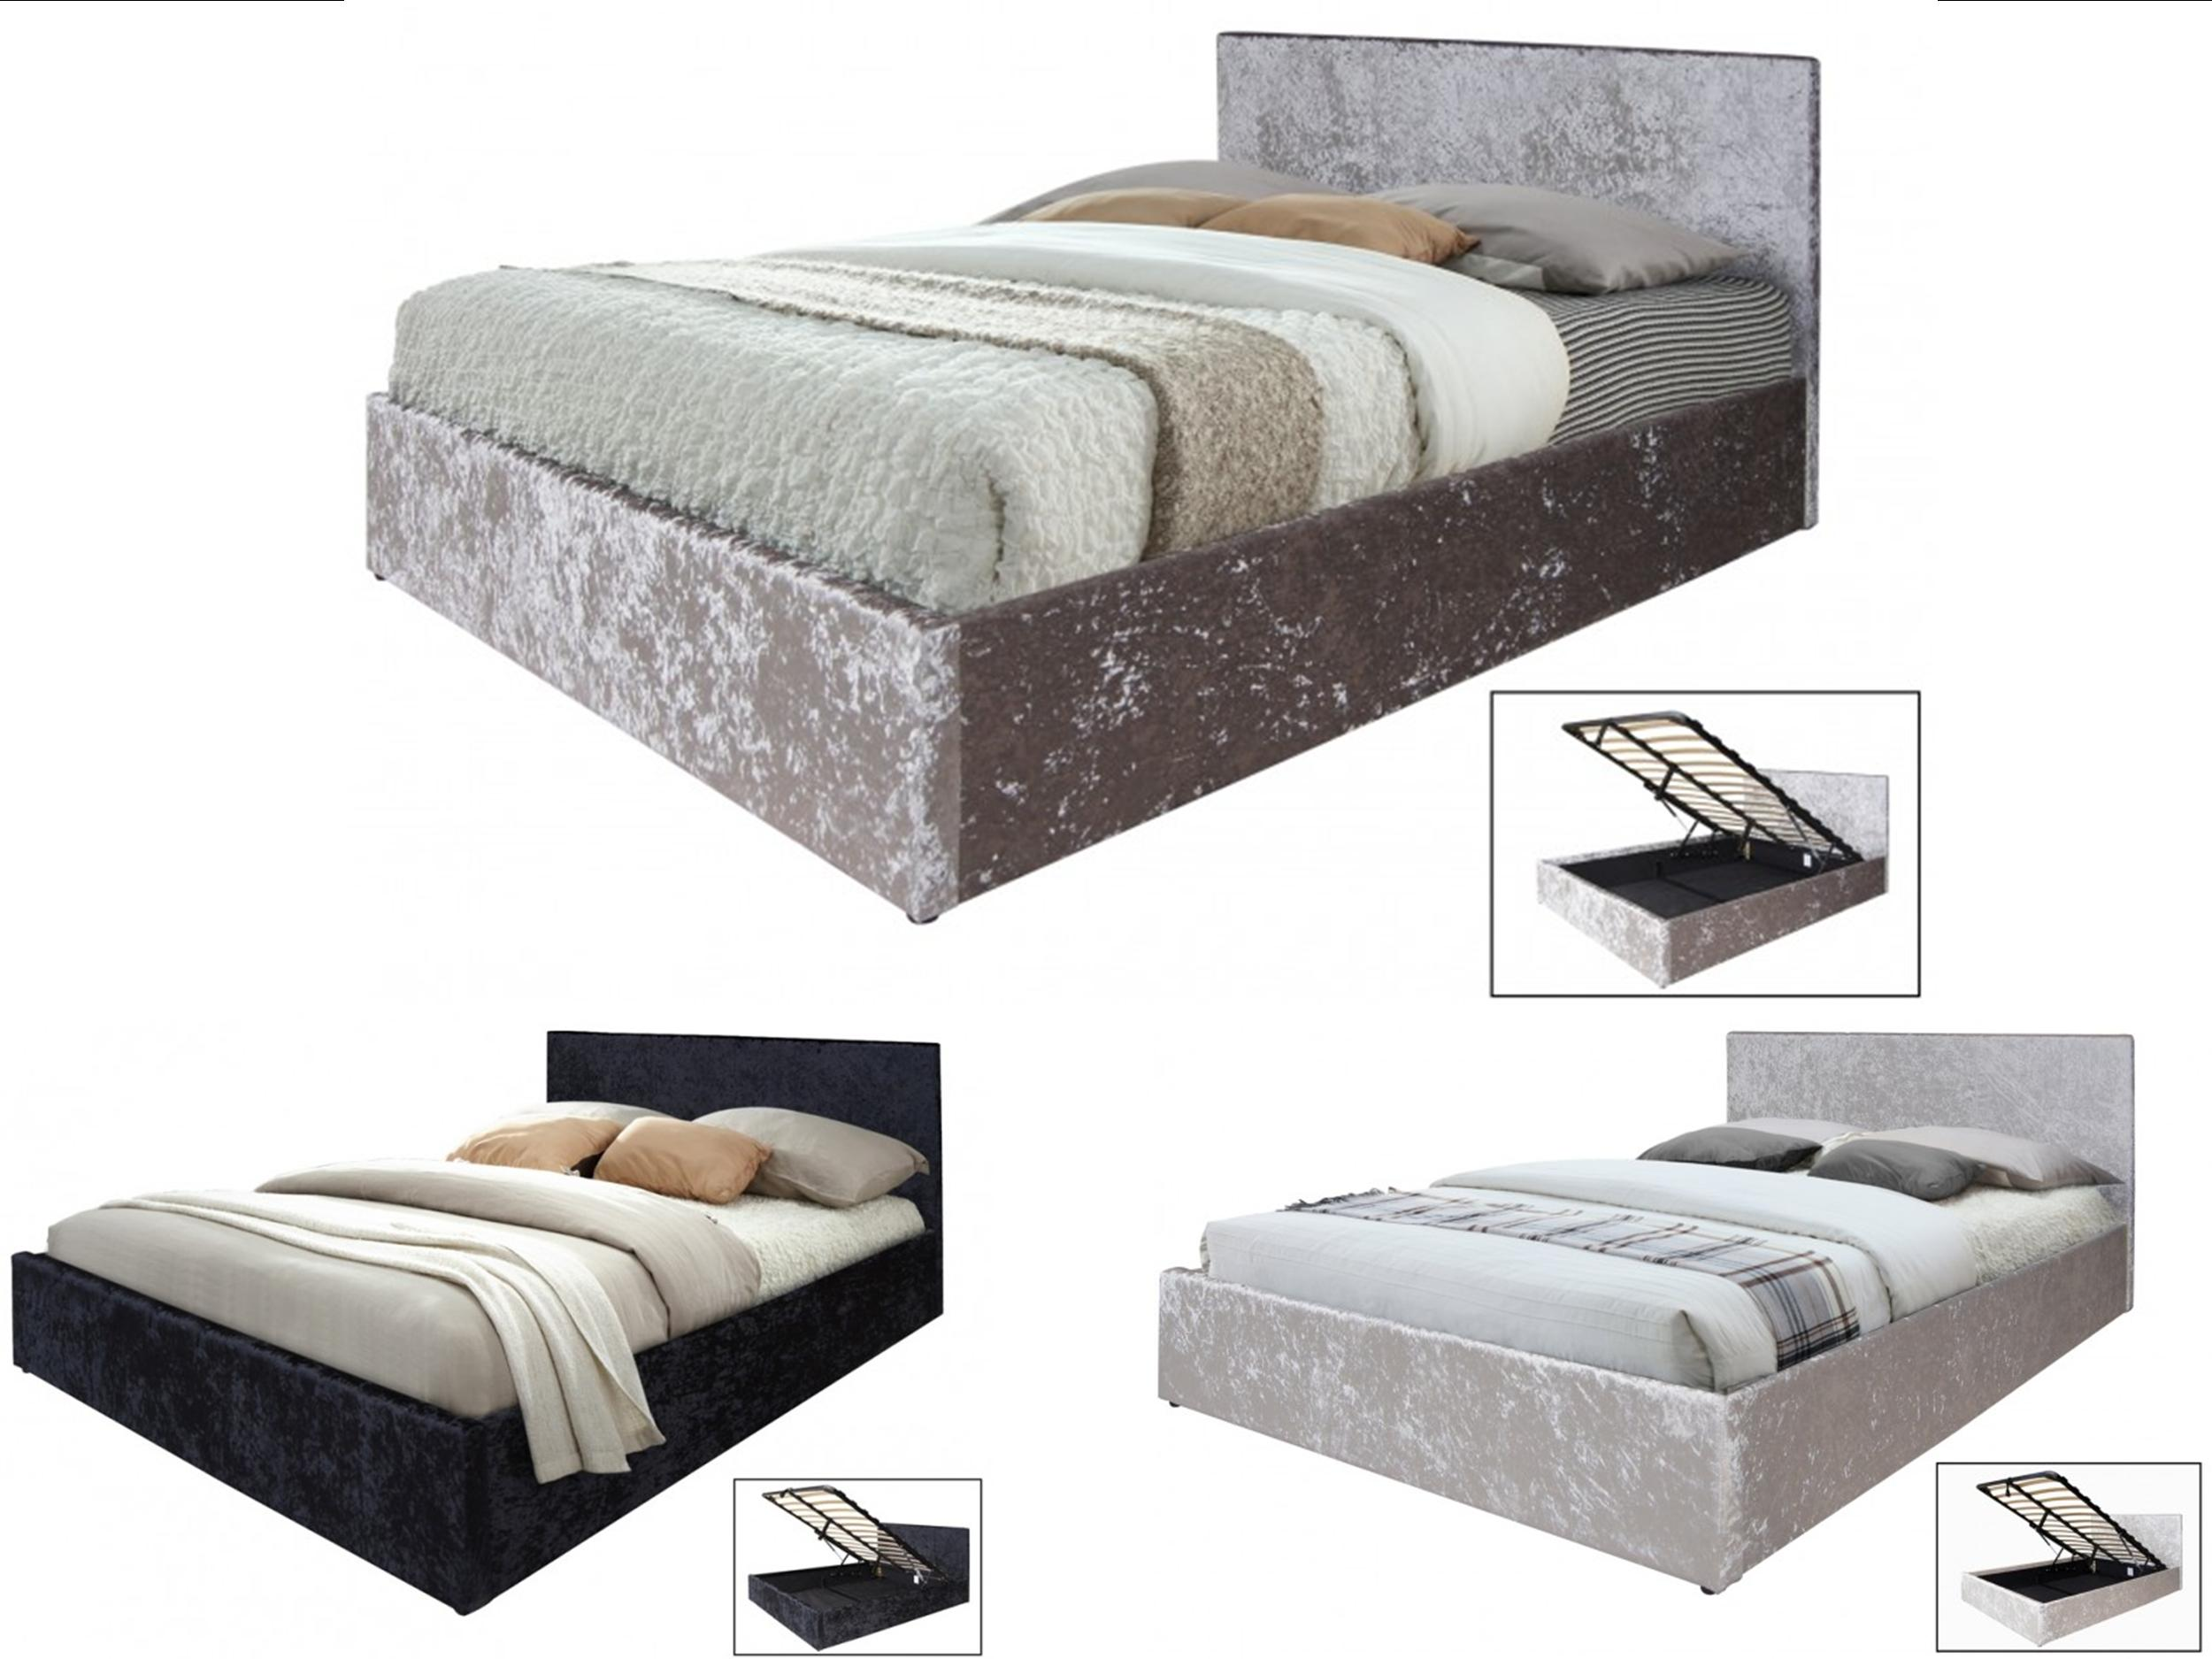 Wondrous Details About Crushed Velvet Ottoman Storage Bed 4Ft6 Double Gas Lift Up Black Champagne Grey Ncnpc Chair Design For Home Ncnpcorg